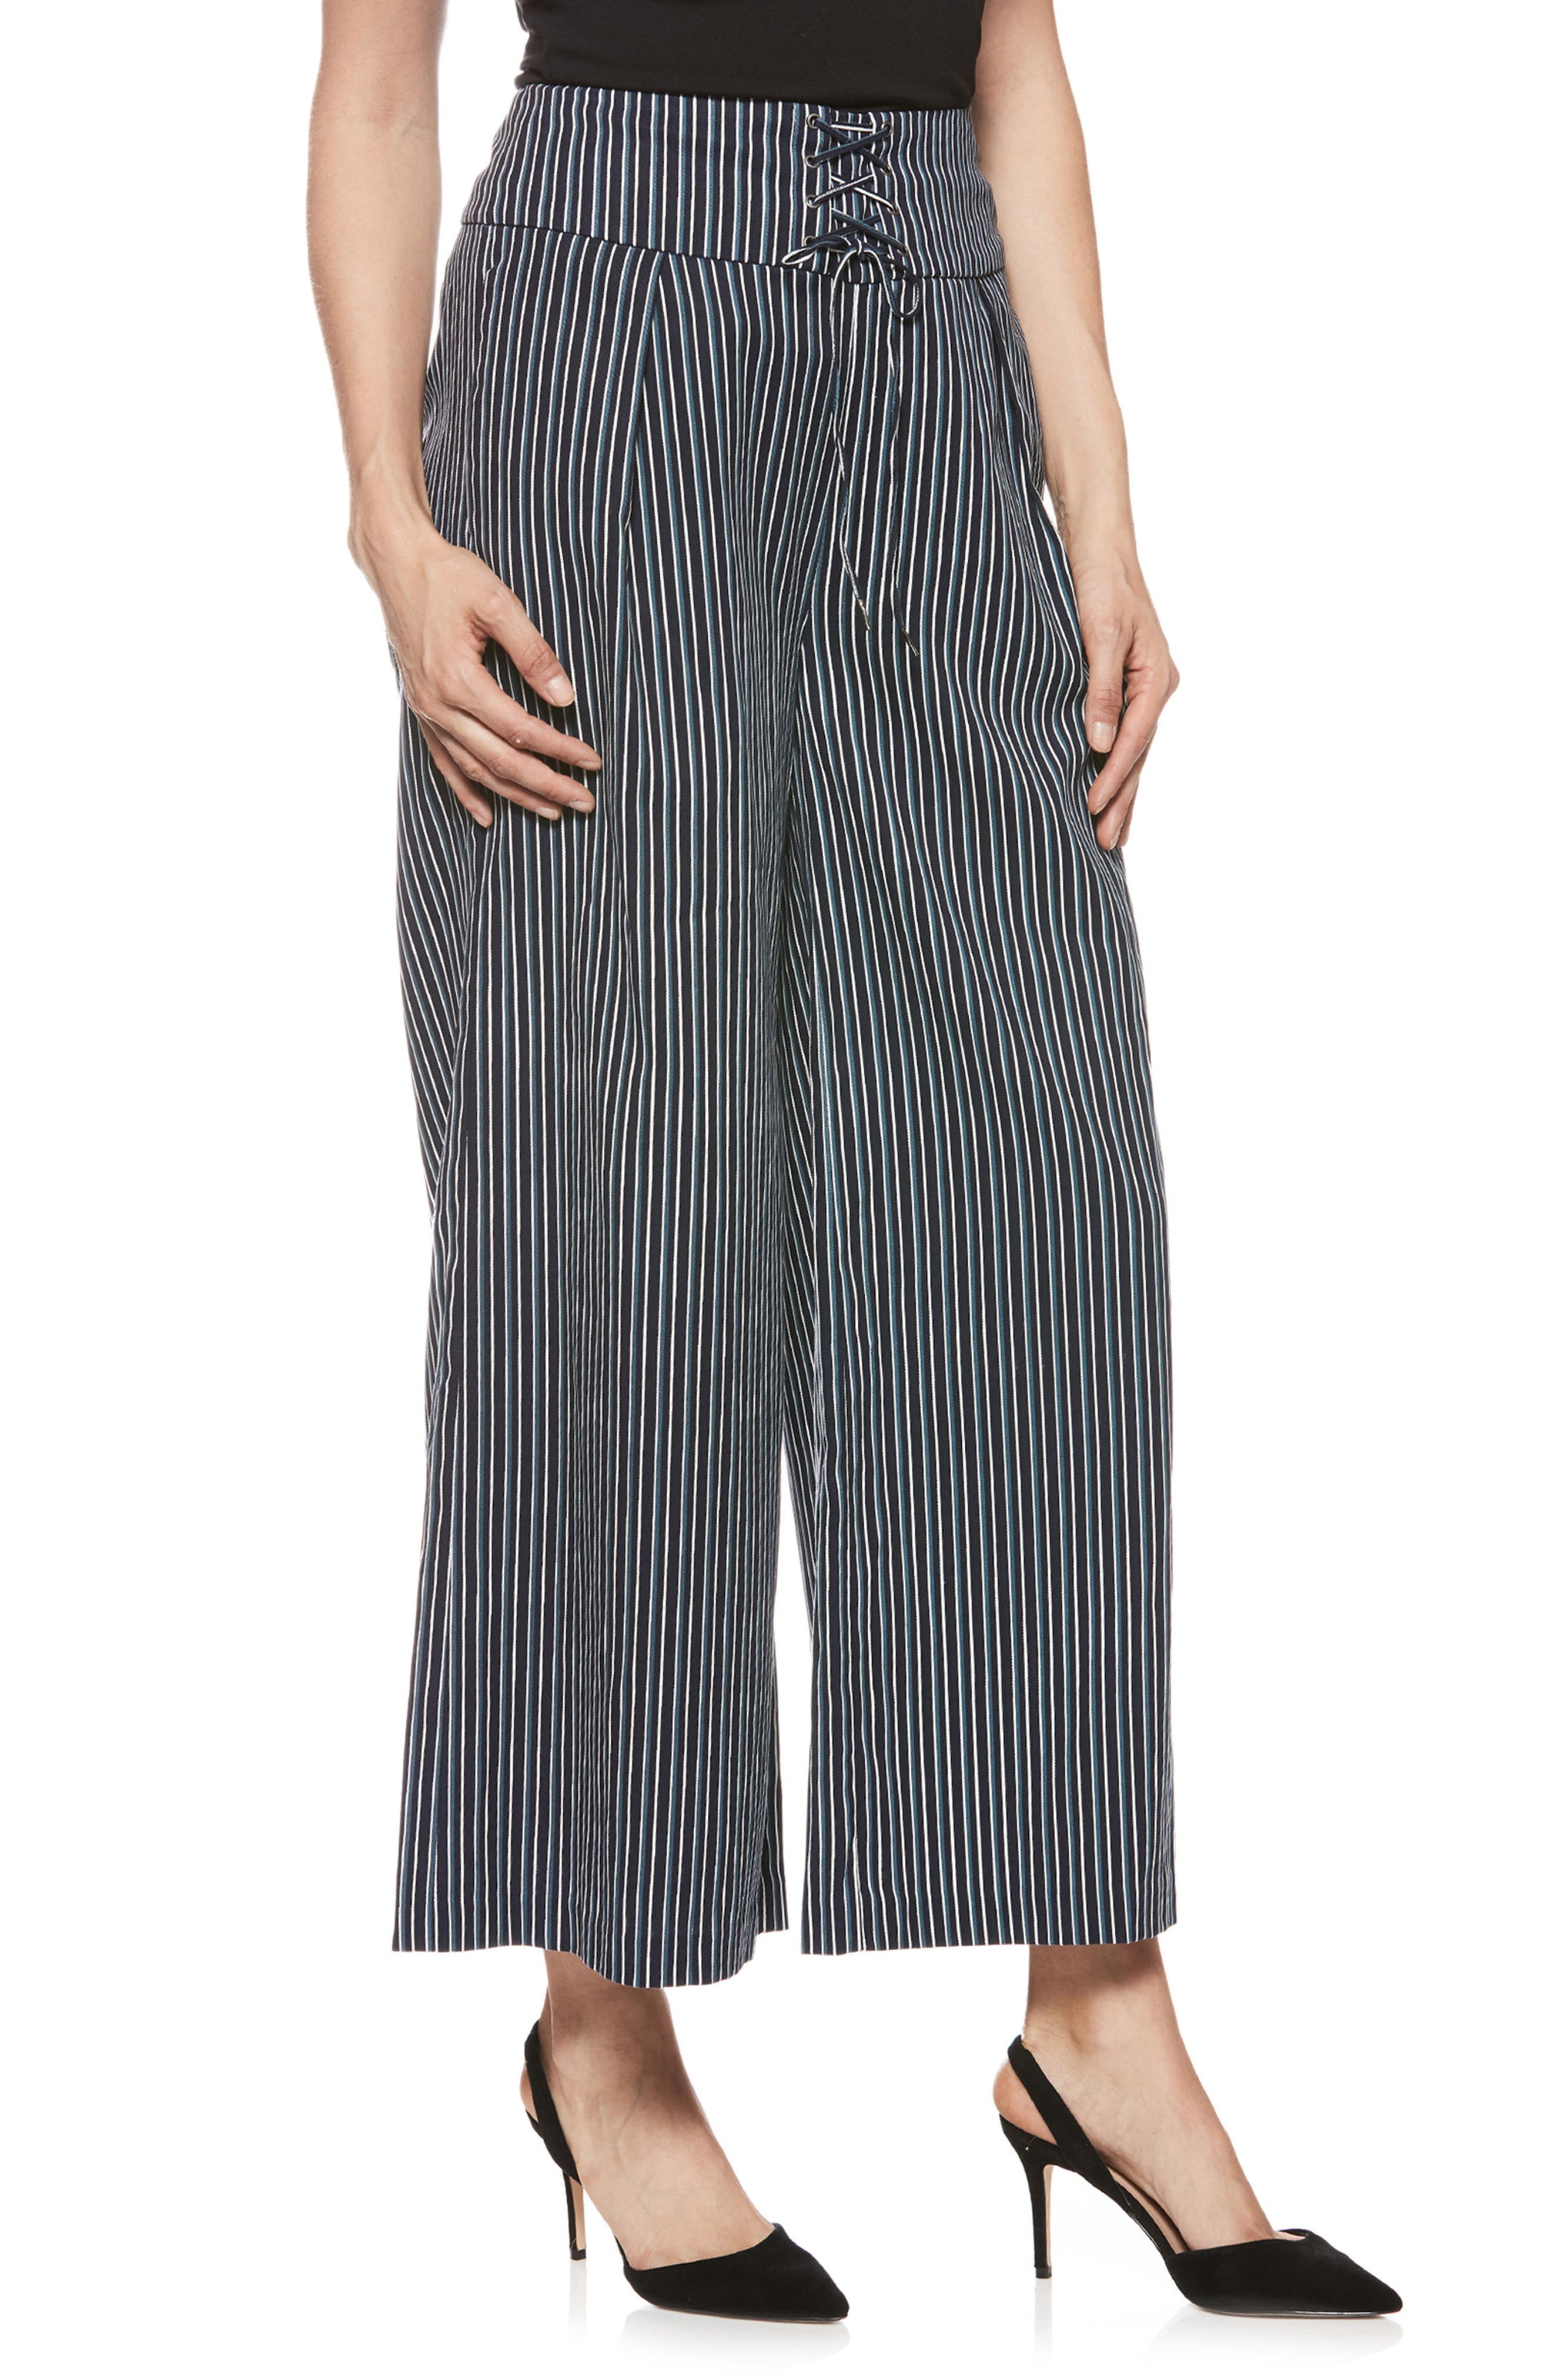 Charisma Pants,                             Main thumbnail 1, color,                             Rich Navy Multi